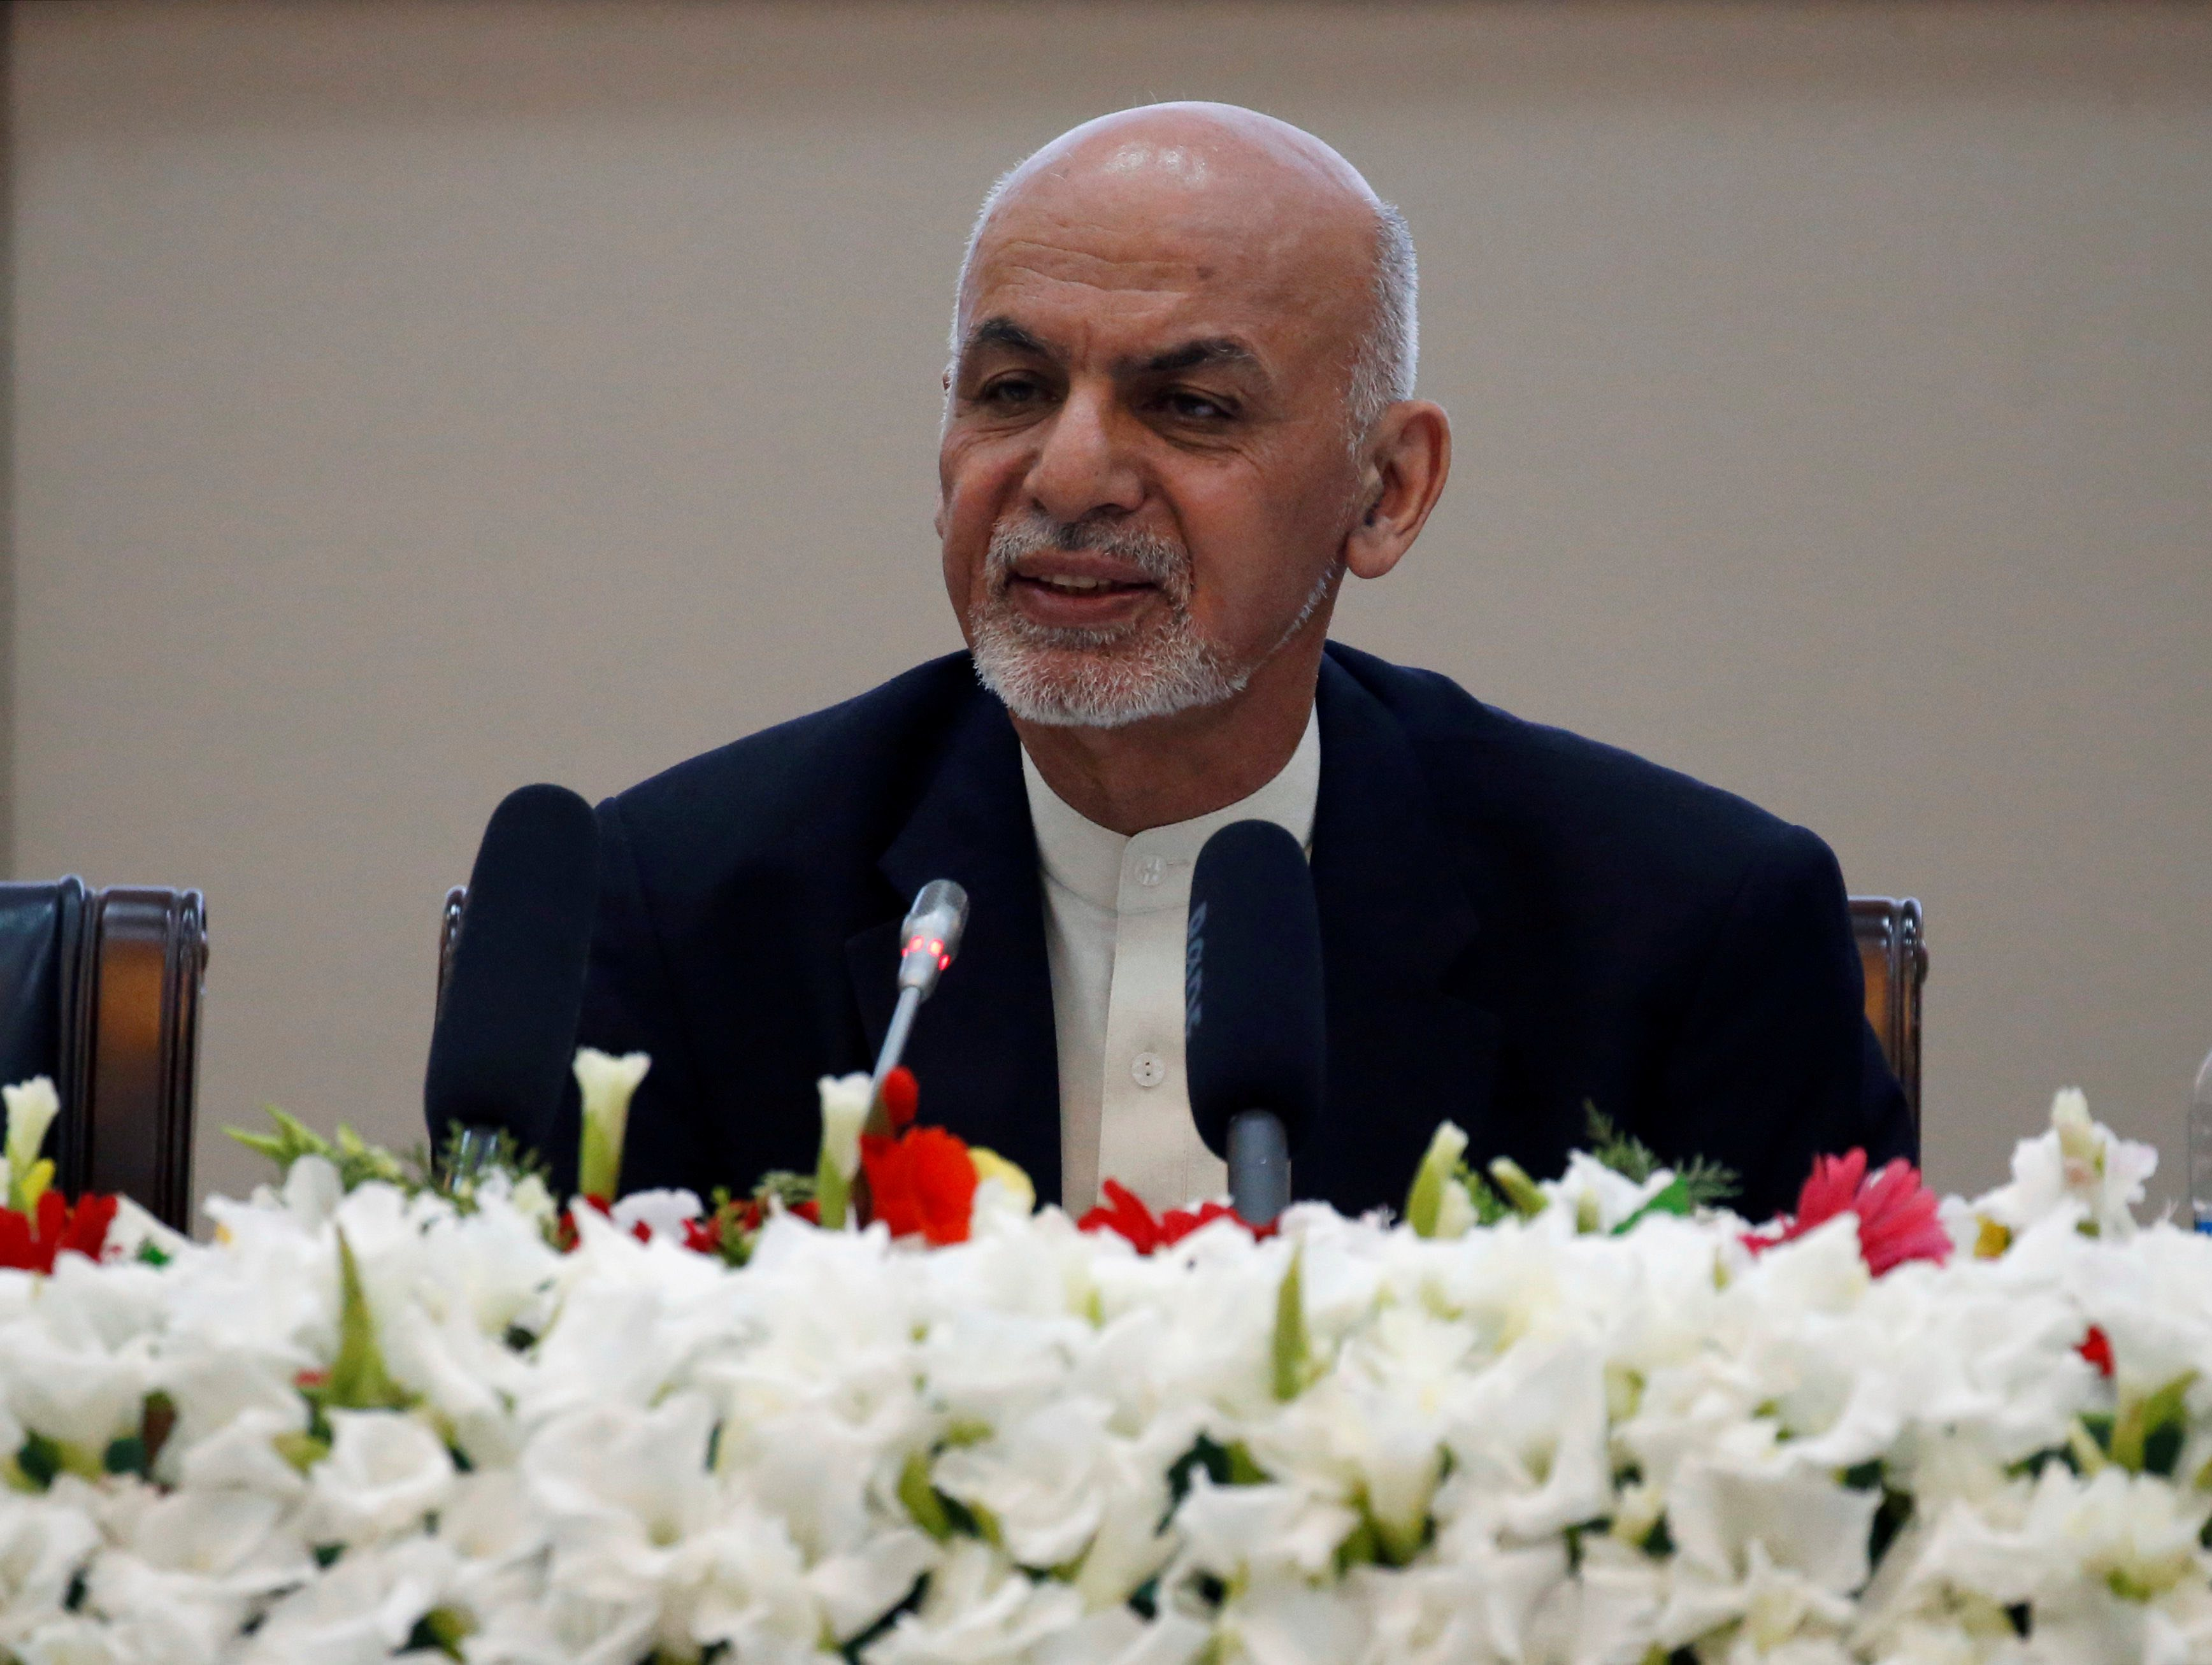 Taliban Issues Cold Response on Invitation to Afghan Peace Talks